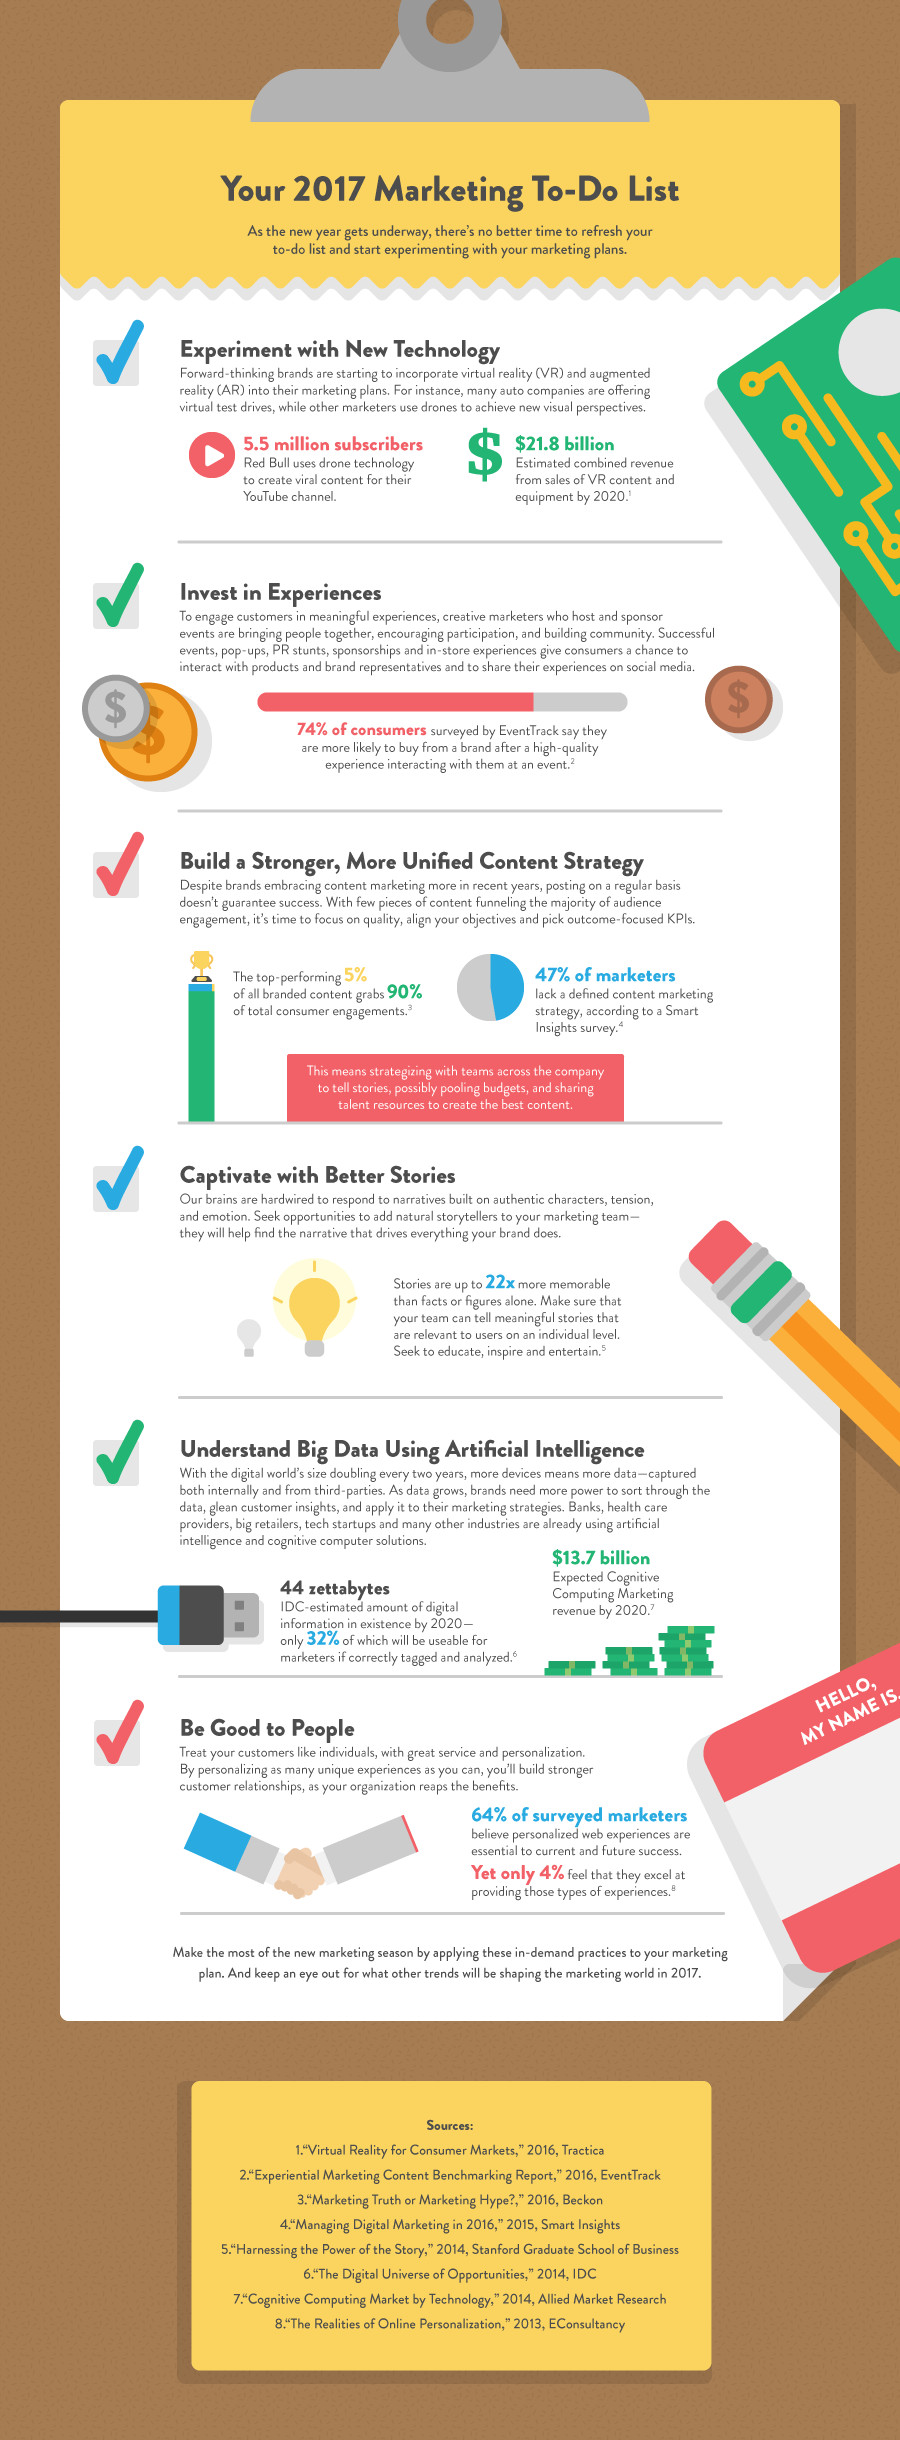 Creating a b2b digital marketing plan for 2017 infographic smart - Your 2017 Marketing To Do List Infographic